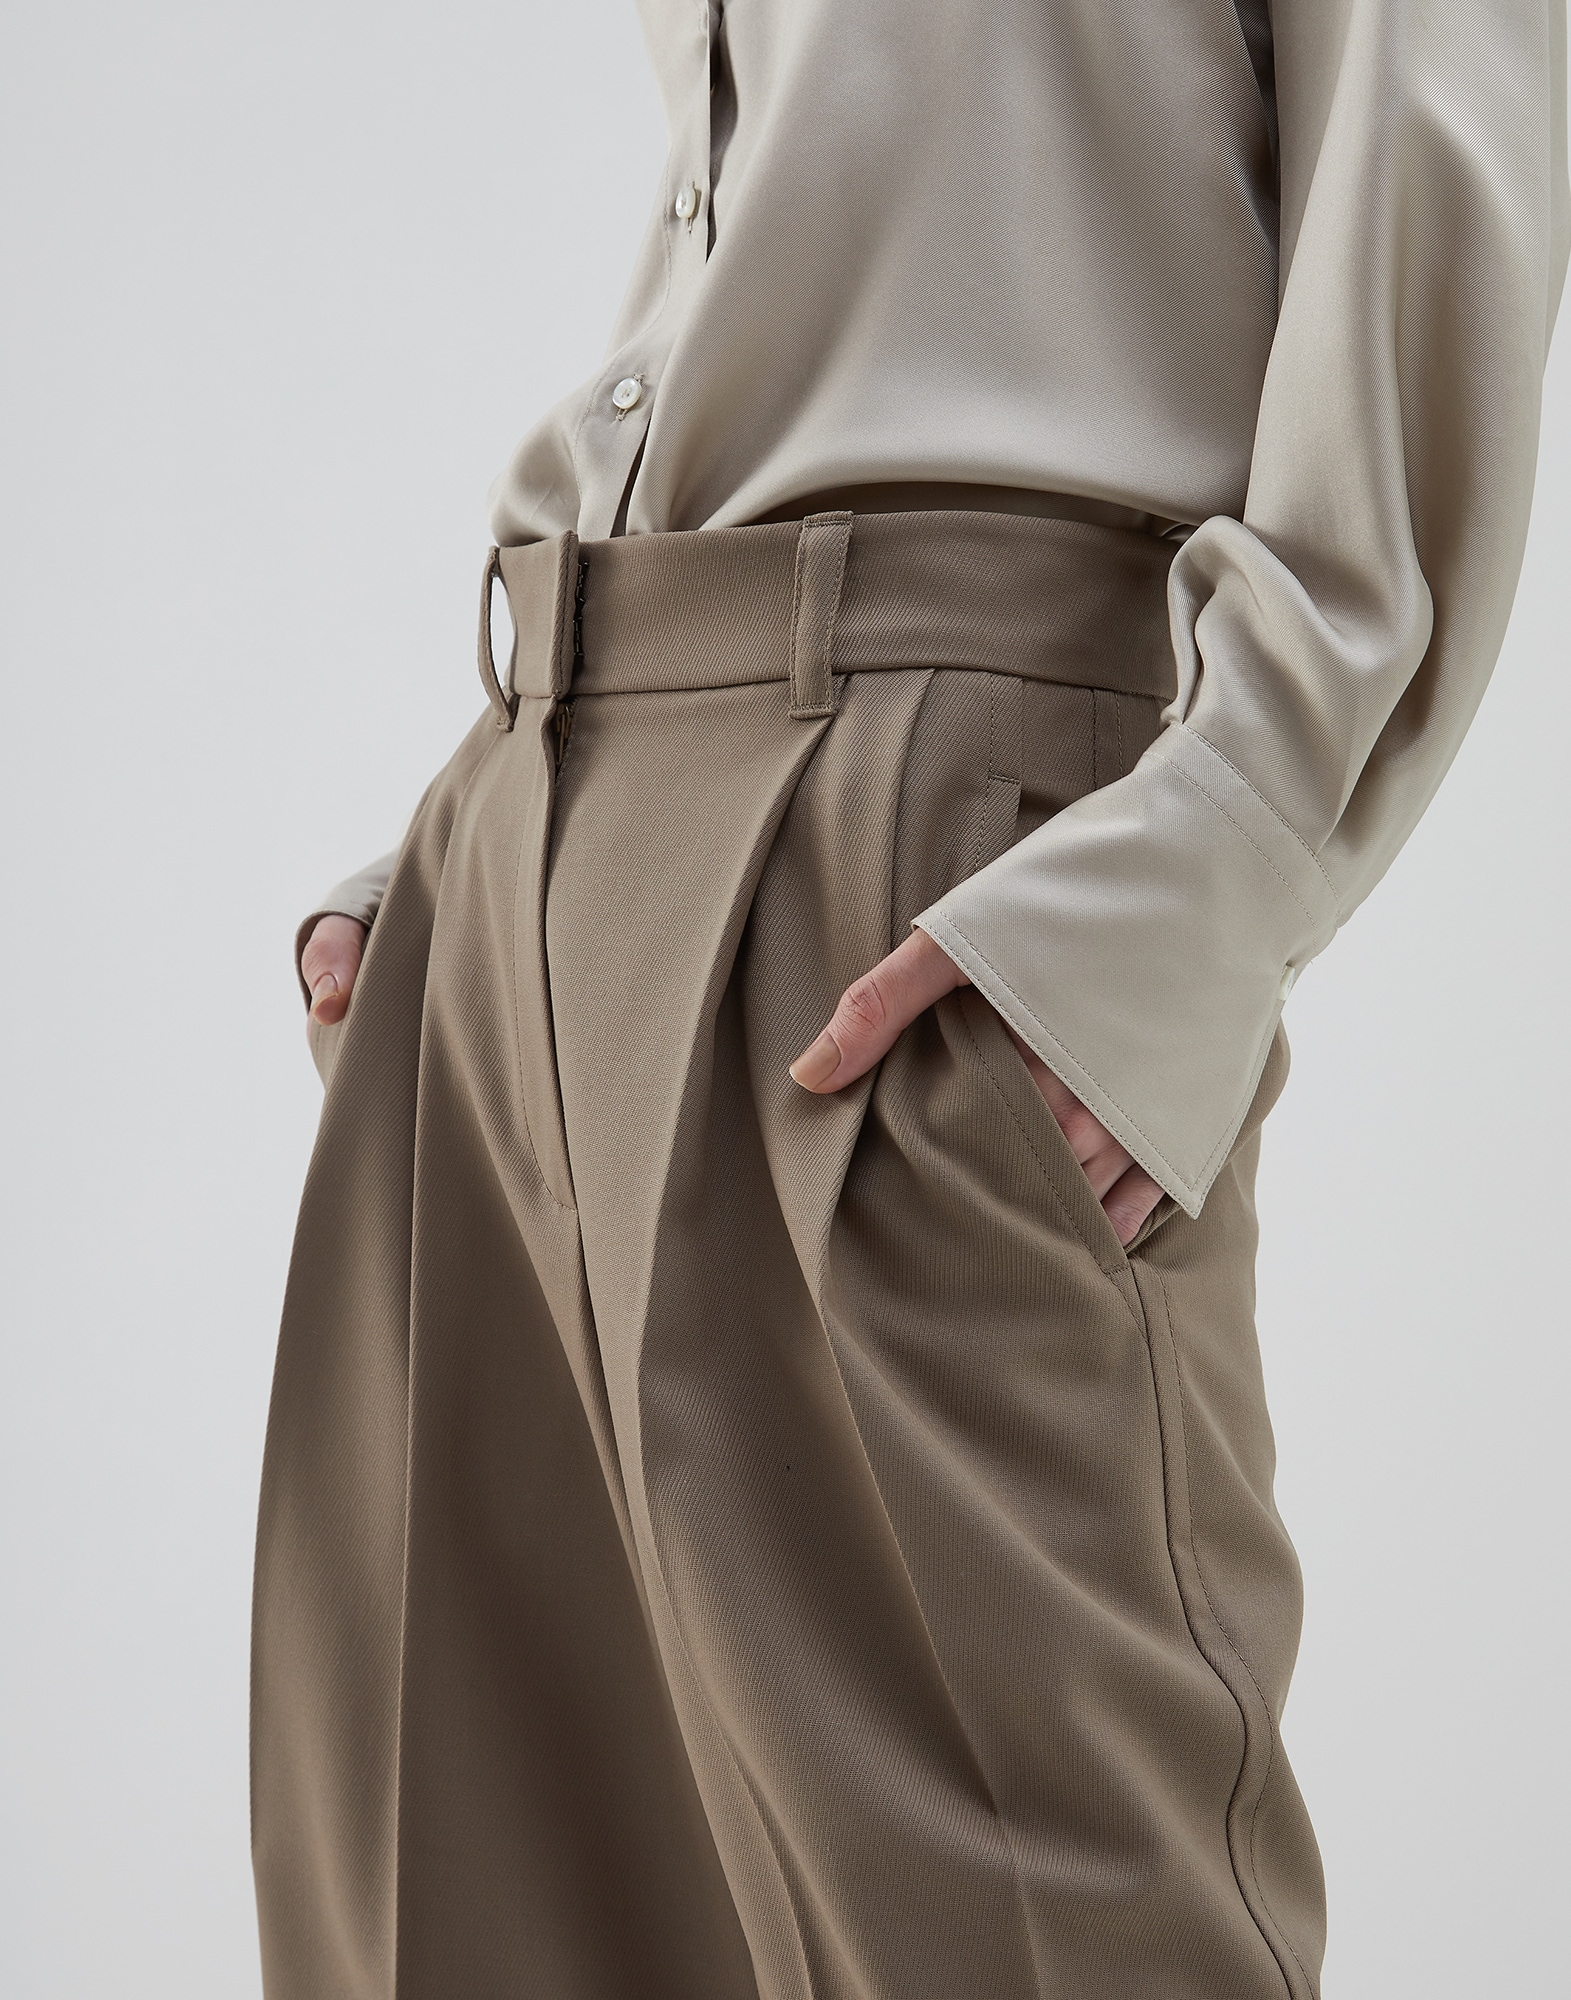 Bermuda Shorts Brown Woman 2 - Brunello Cucinelli